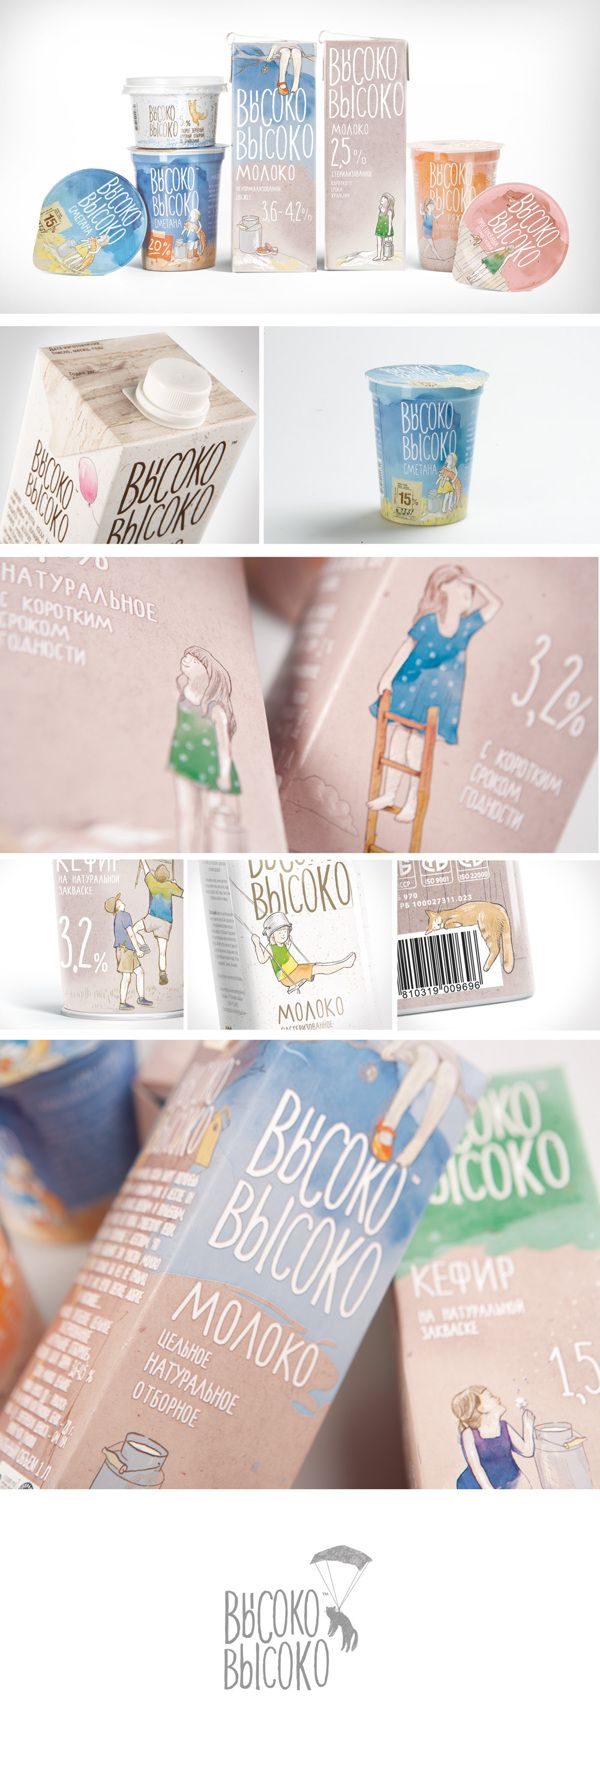 "Visoko-Visoko ""sky high"" milk packaging /// I so love hand-illustrated elements. It gives everything a touch of personality"